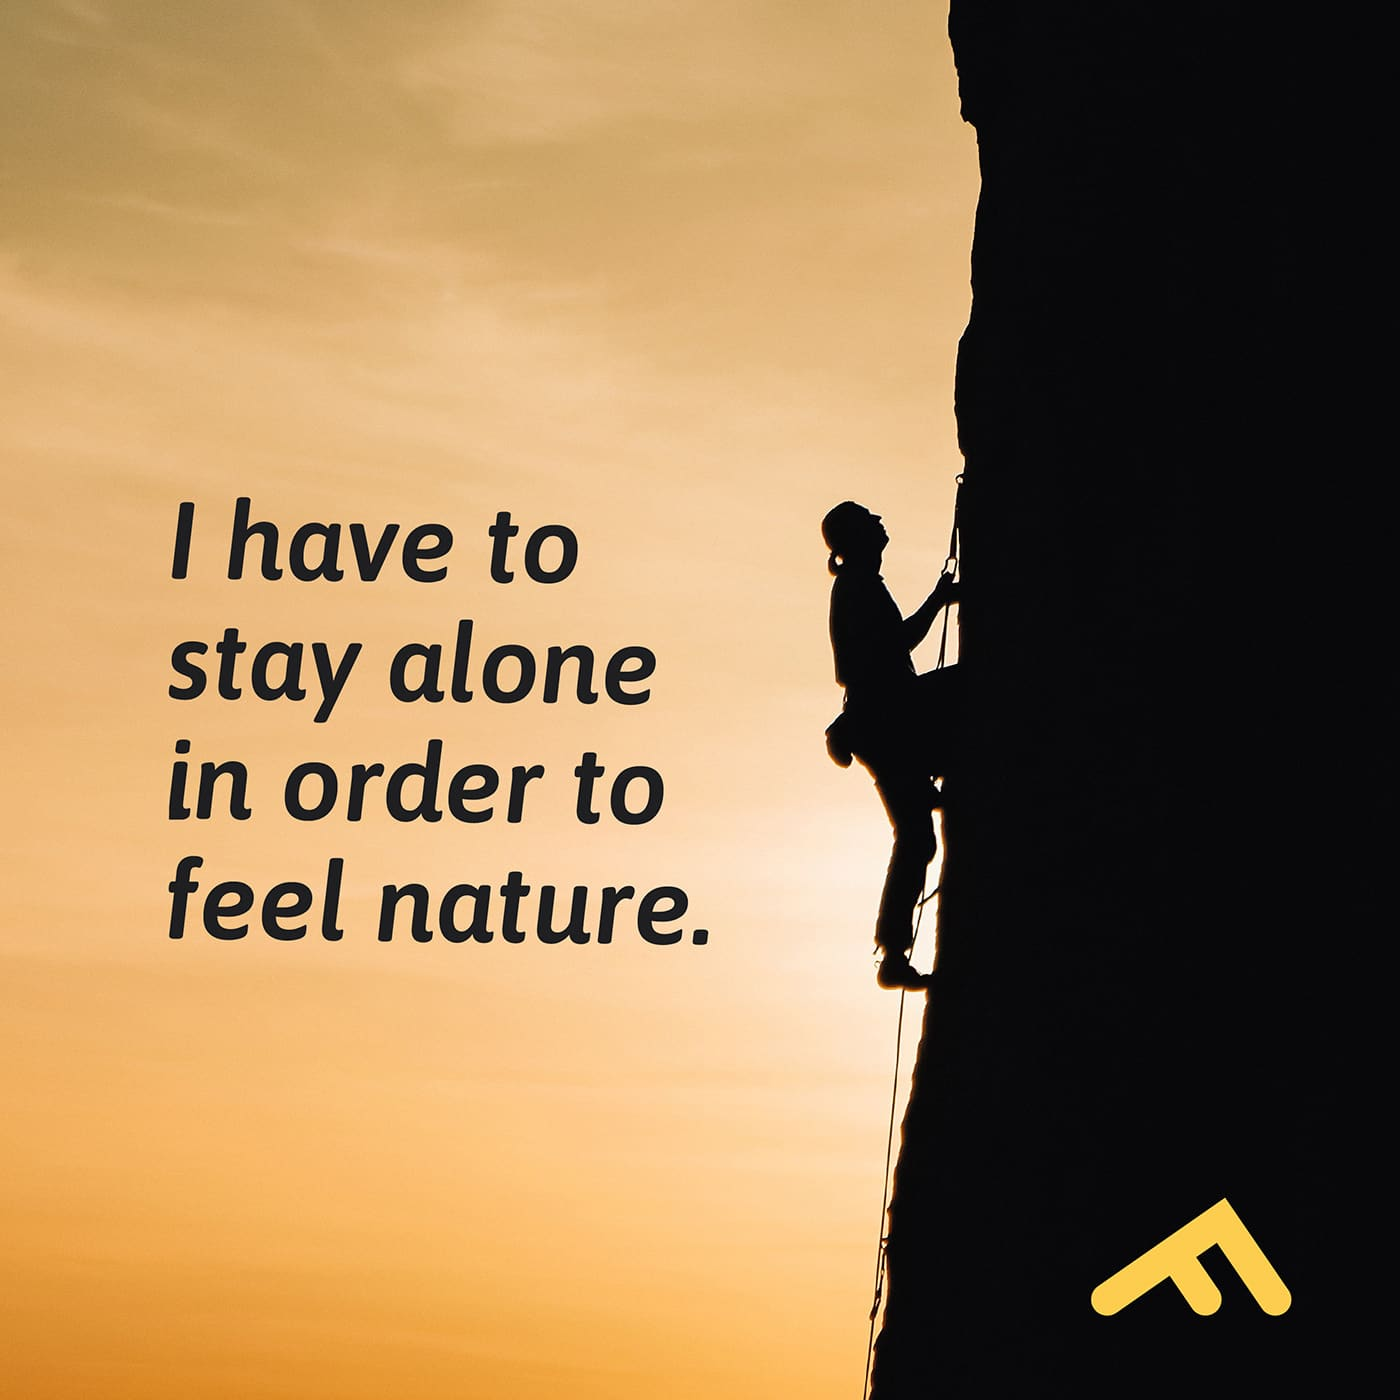 I have to stay alone in order to feel nature